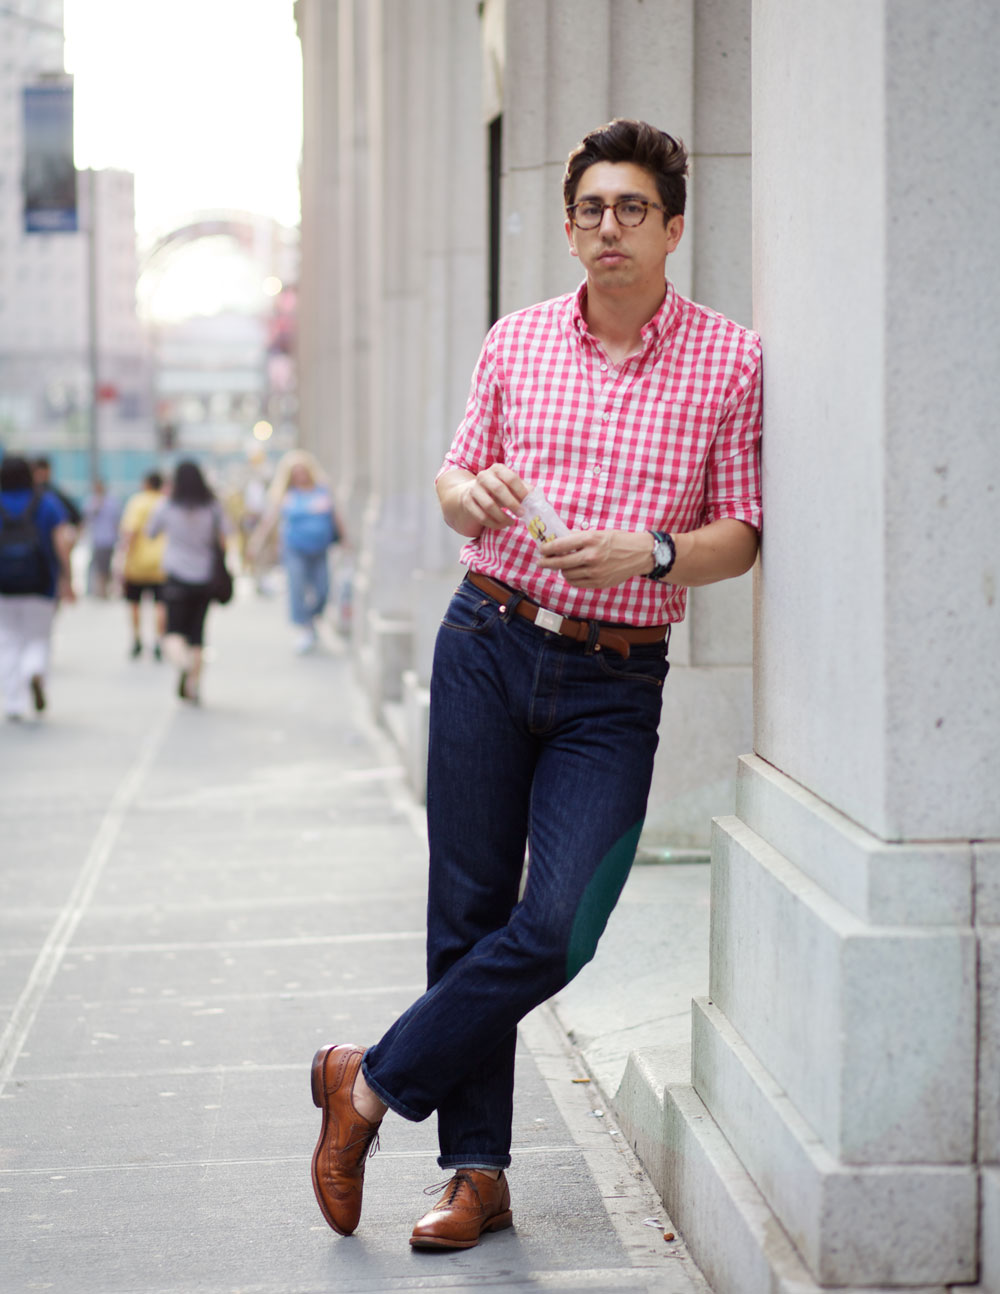 red-gingham-shirt-fred-streetstyle-NYC-fashion-men.jpg